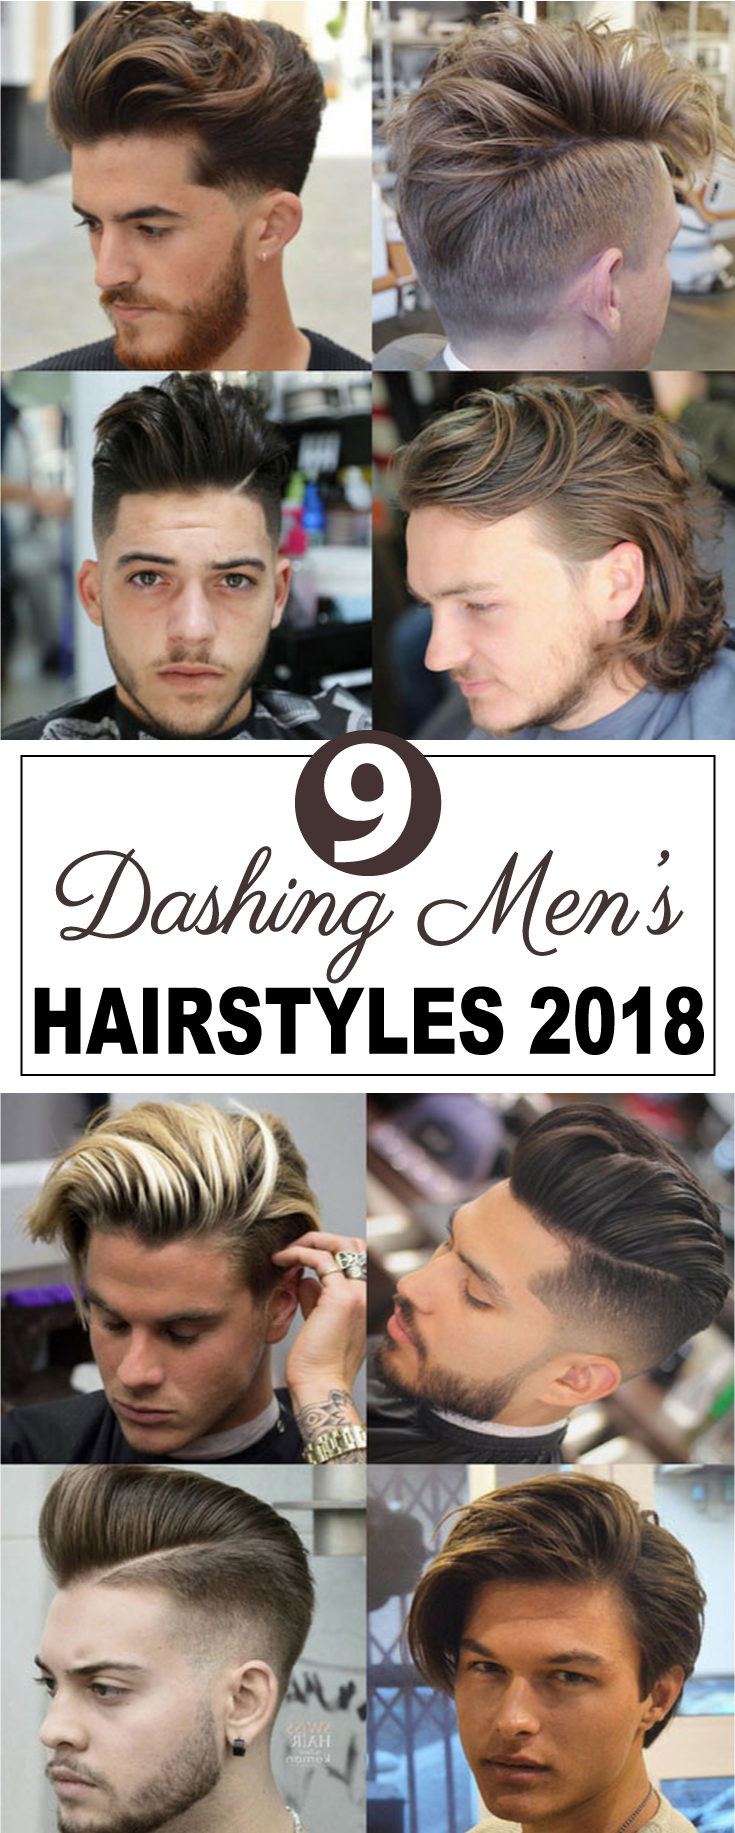 How To Find The Right Hairstyle For Men | Best Hairstyles 2018